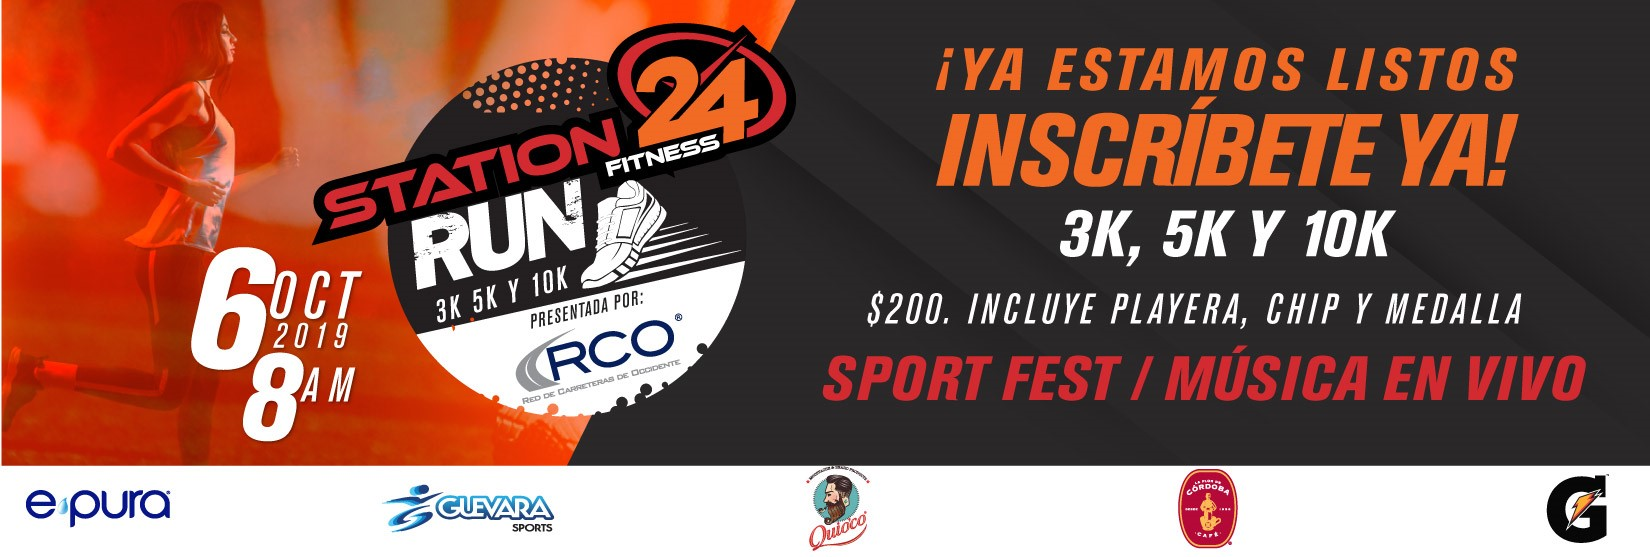 CARRERA RUN STATION 24 FITNESS PRESENTADA POR RCO